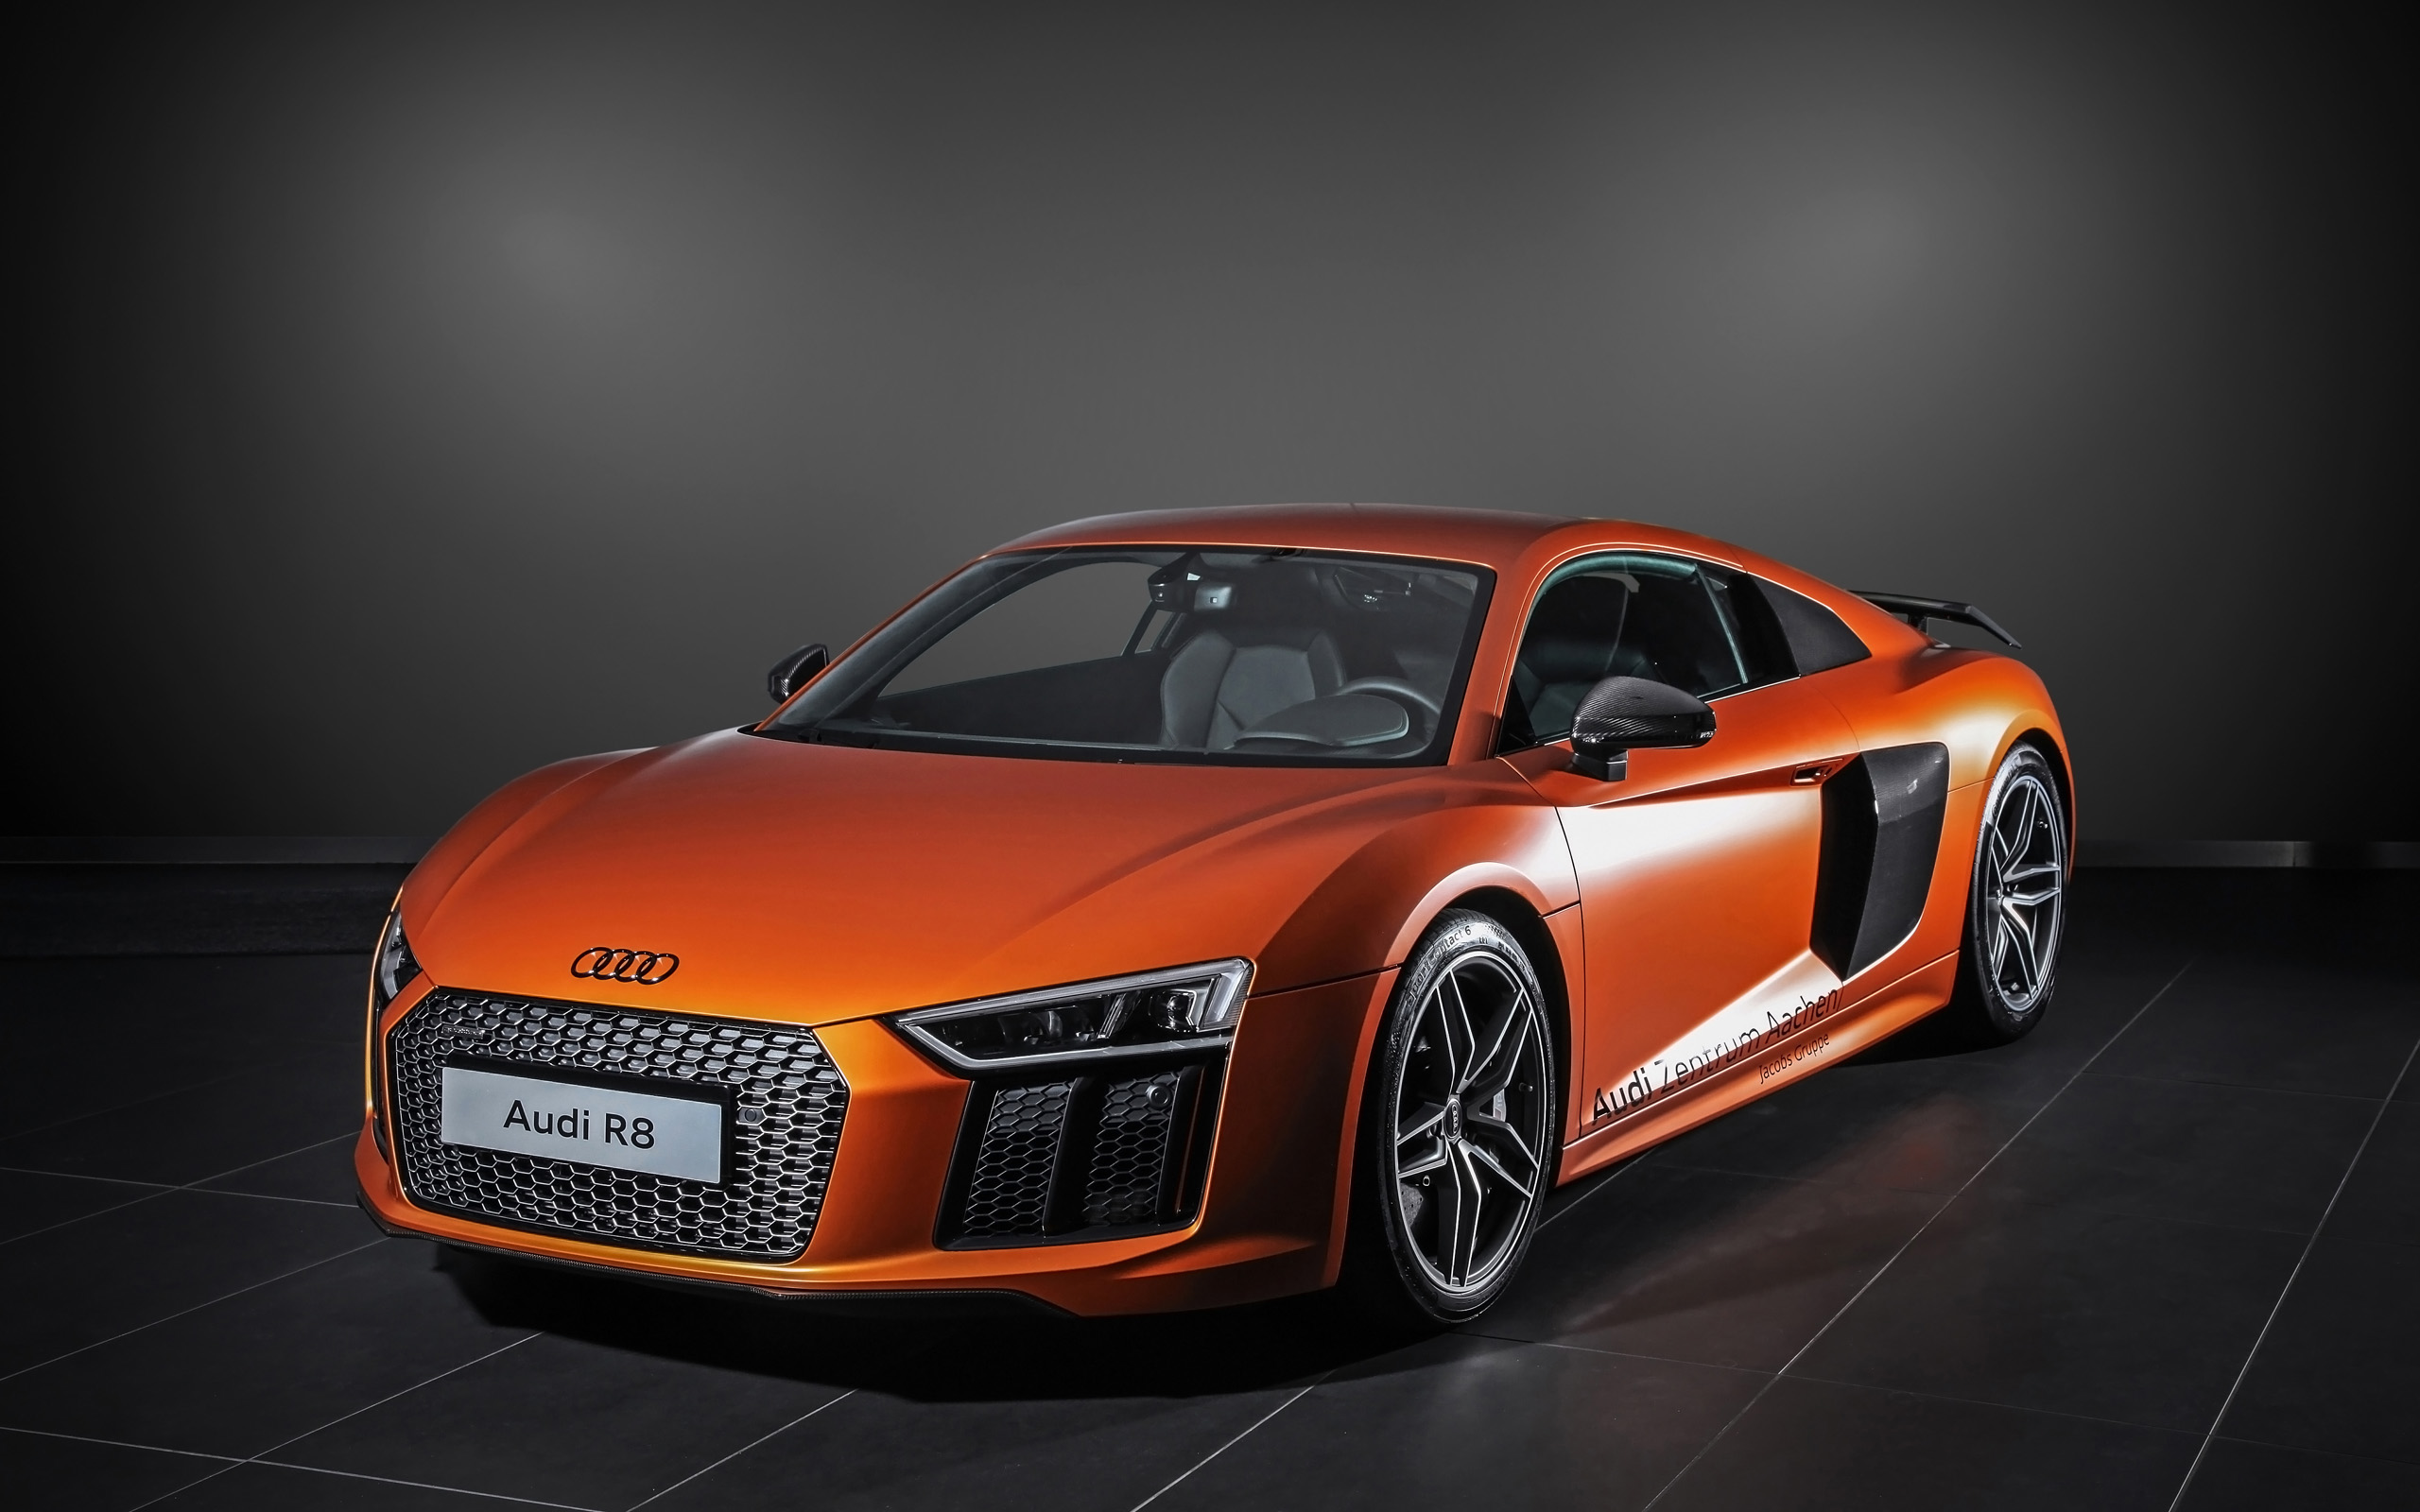 HplusB Design Audi R8 V10 2015 Wallpapers HD Wallpapers 2560x1600